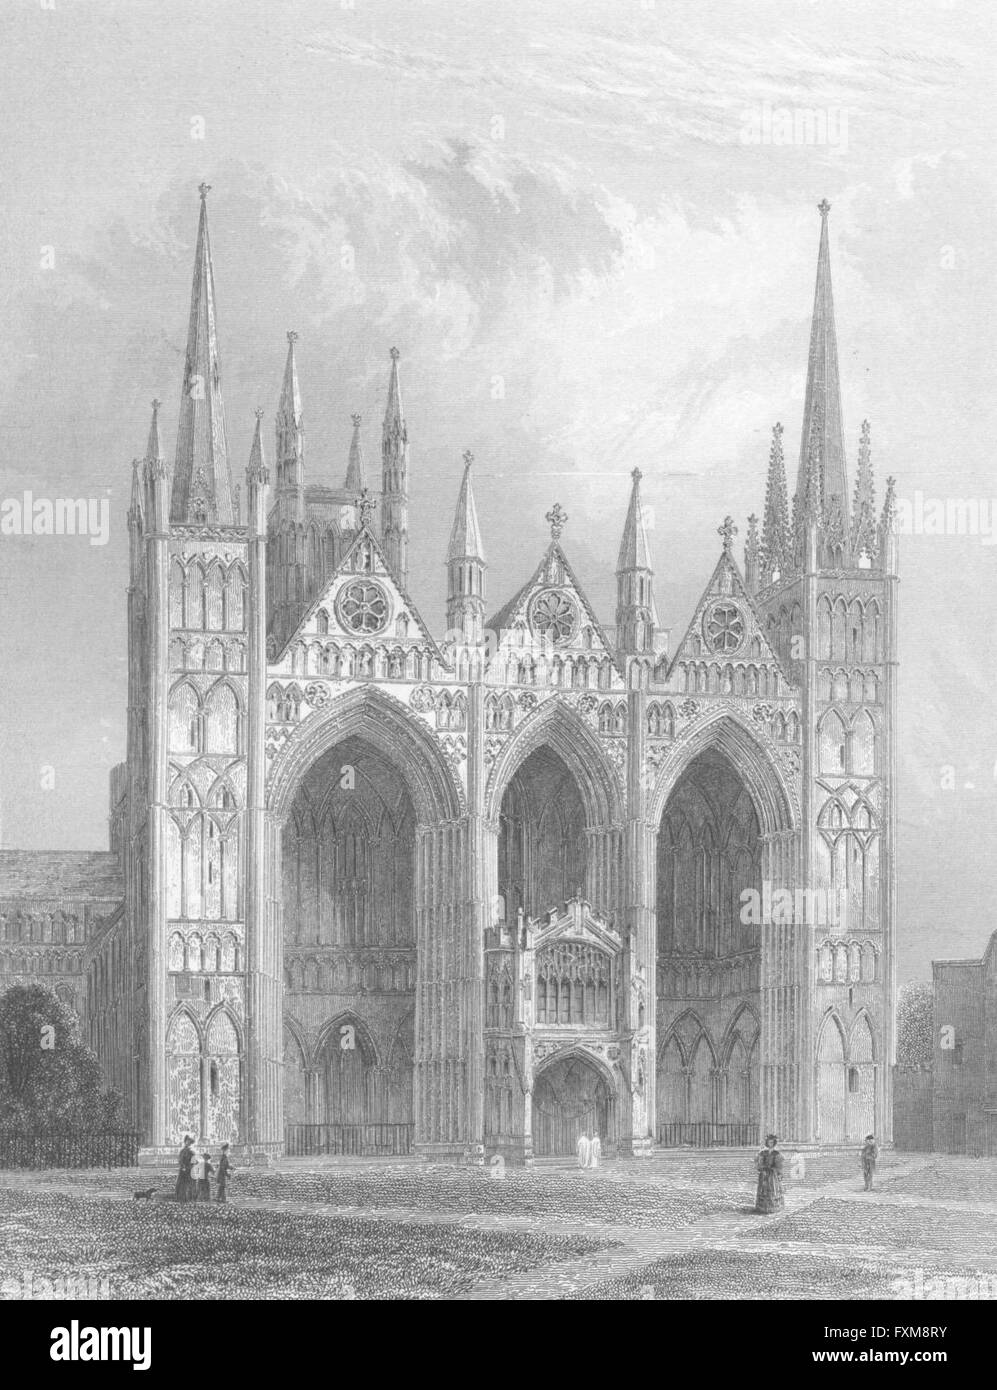 CAMBS: Peterborough cathedral, antique print 1836 - Stock Image